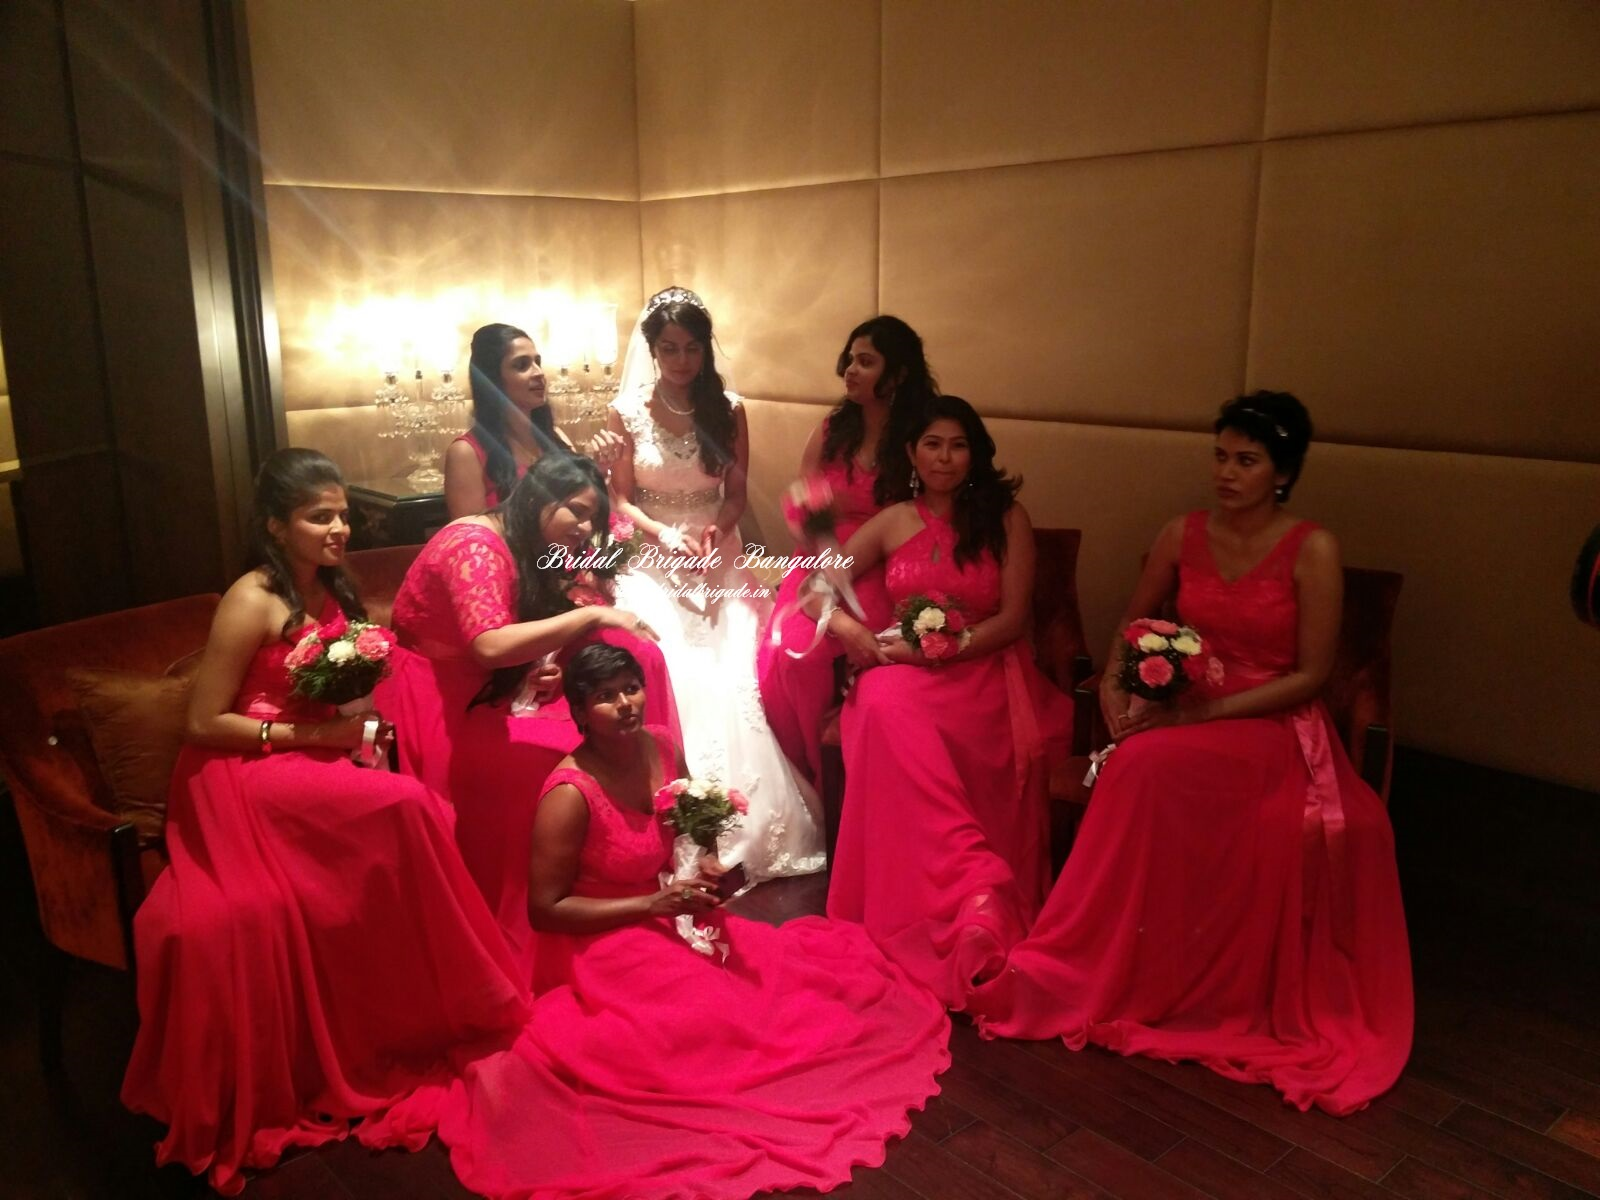 Western Bridesmaid Gowns in Bangalore